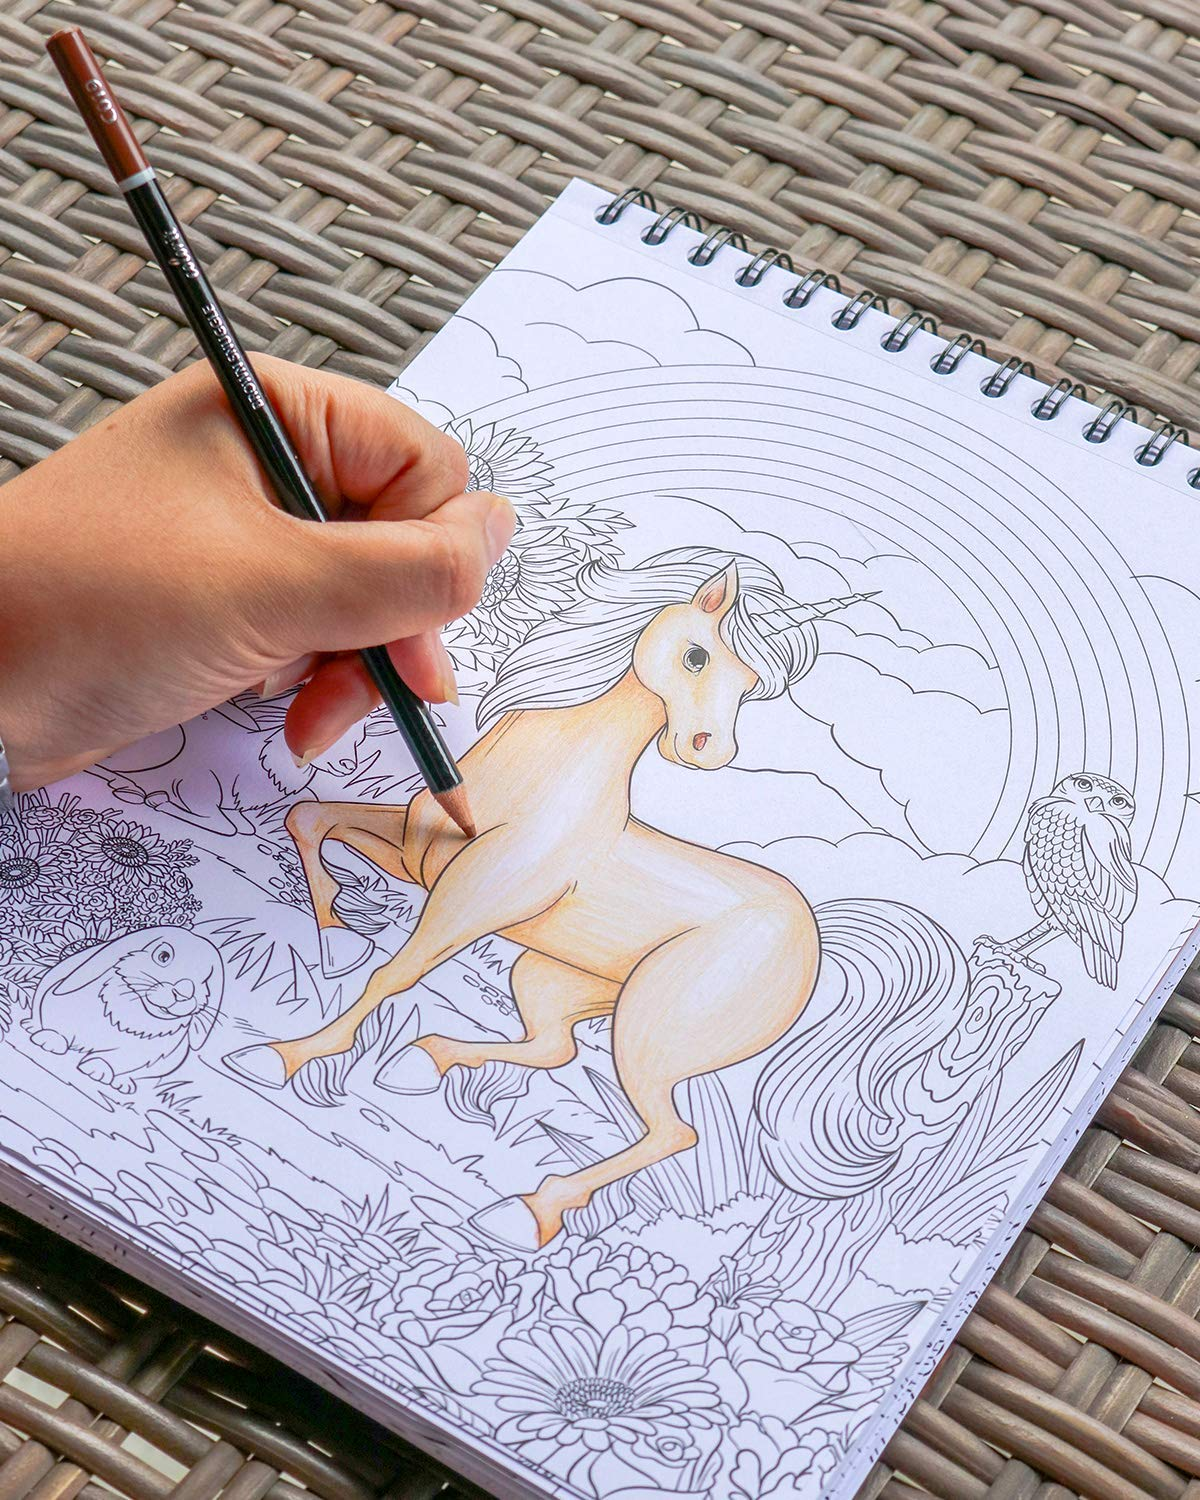 ColorIt Colorful Unicorns Adult Coloring Book - 50 Single-Sided Pages, Thick Smooth Paper, Lay Flat Hardback Covers… 9